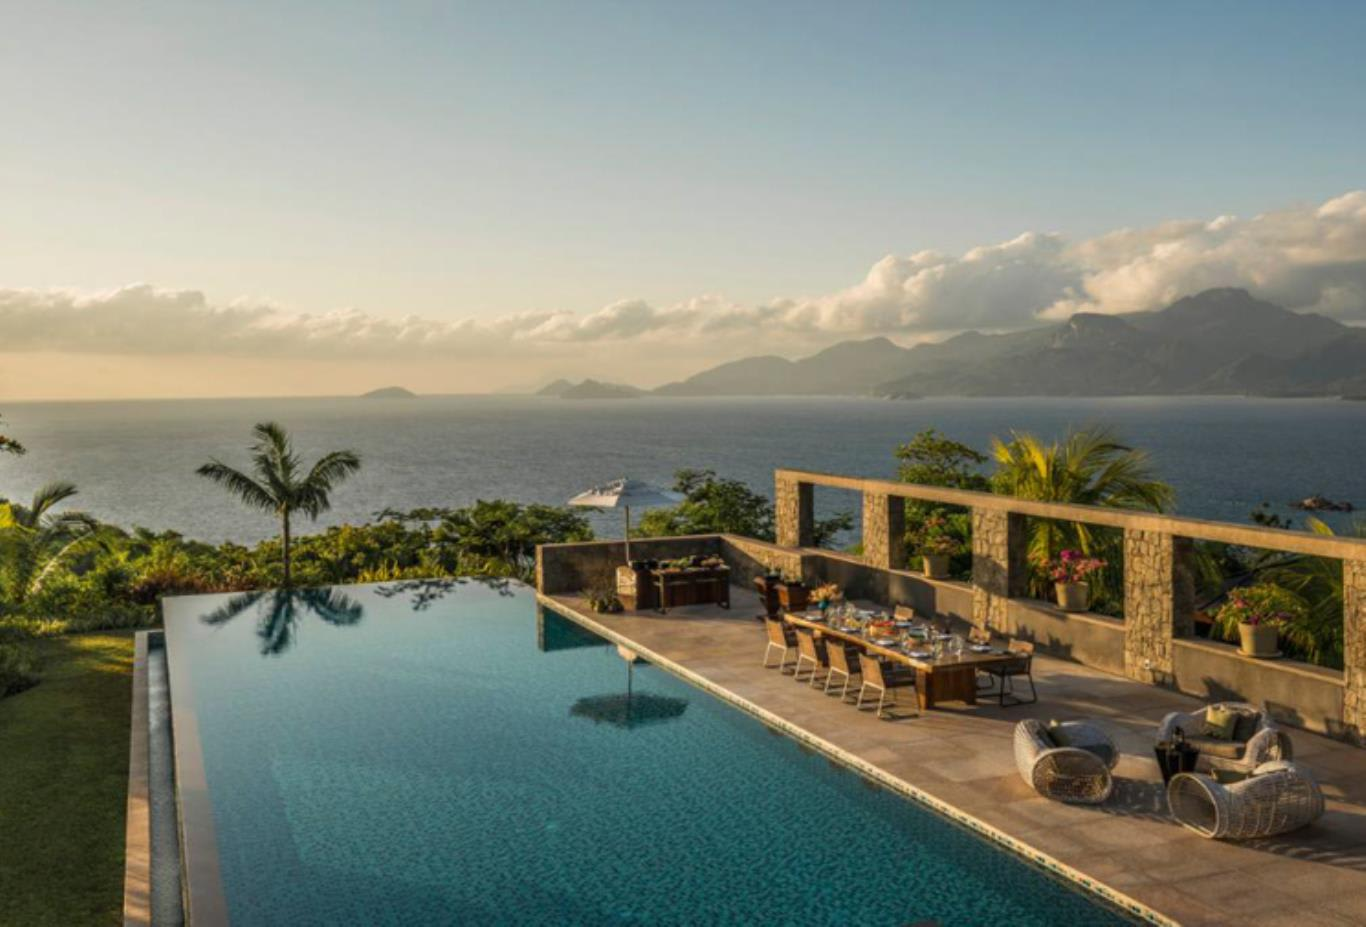 Infinity Pool and Views